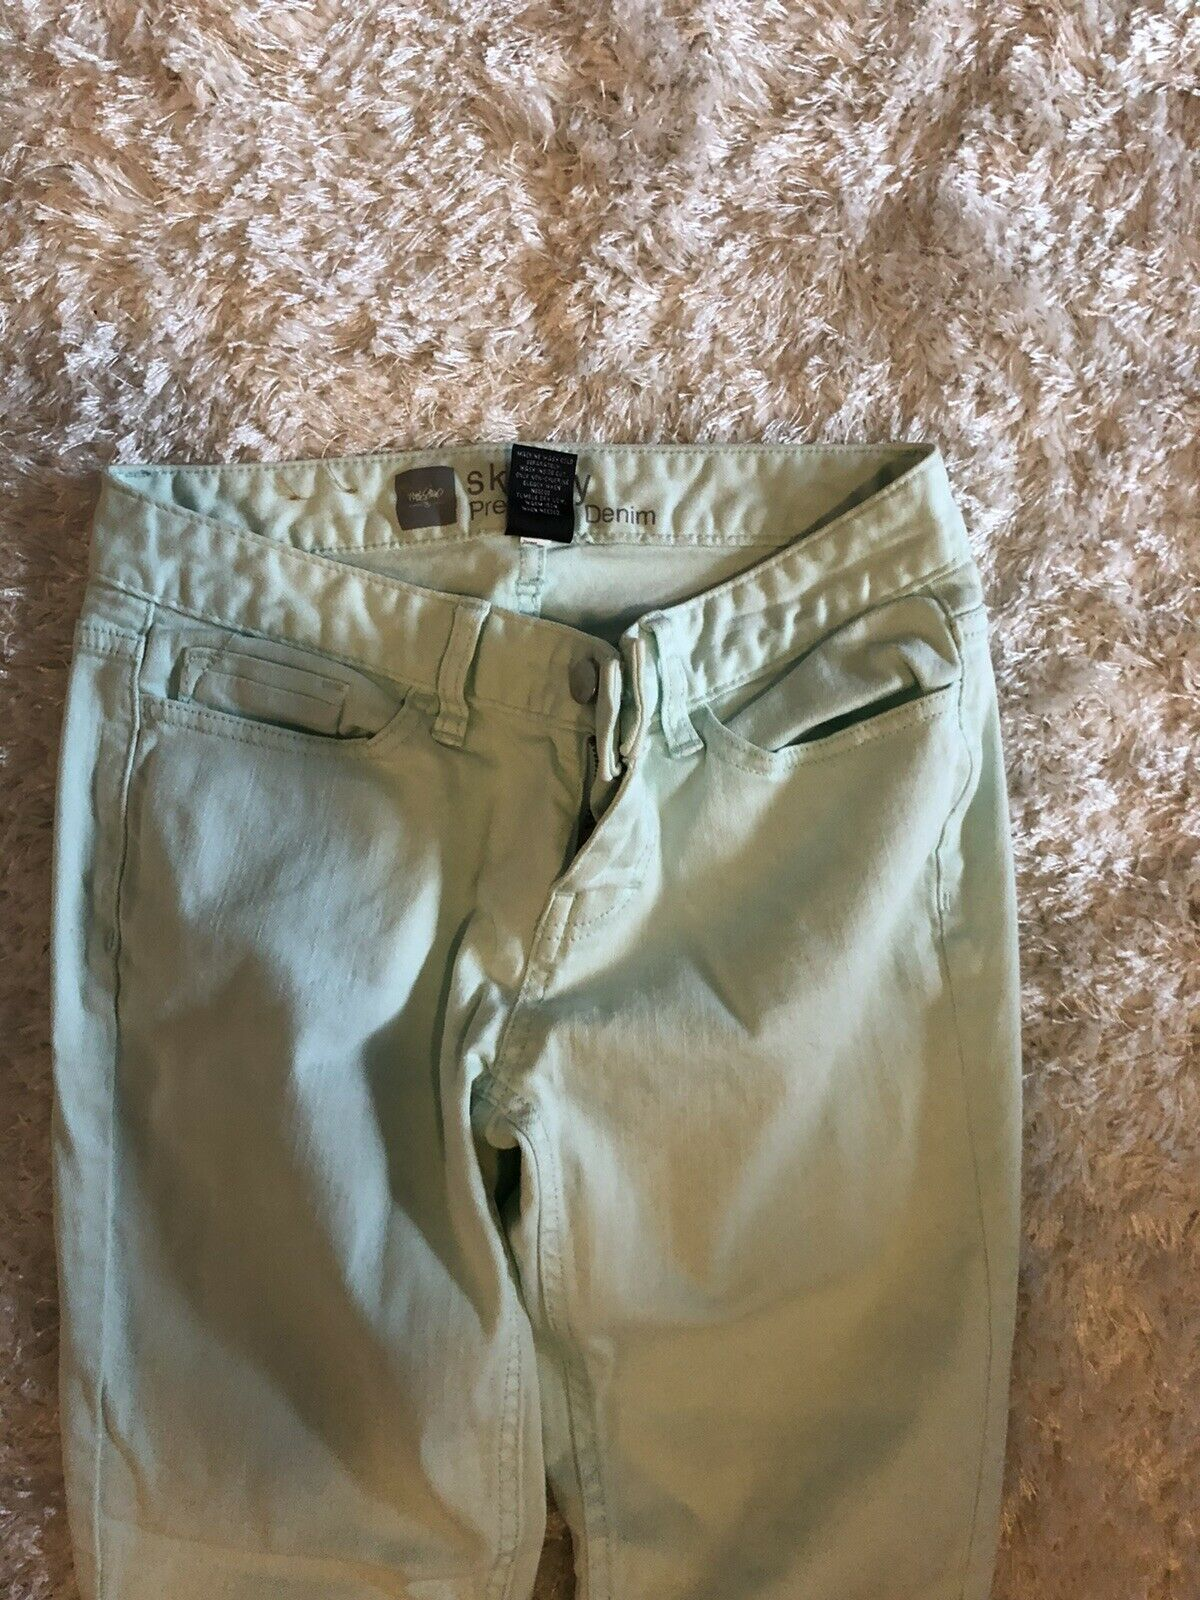 skinny jeans size 2 Mint Green - image 3